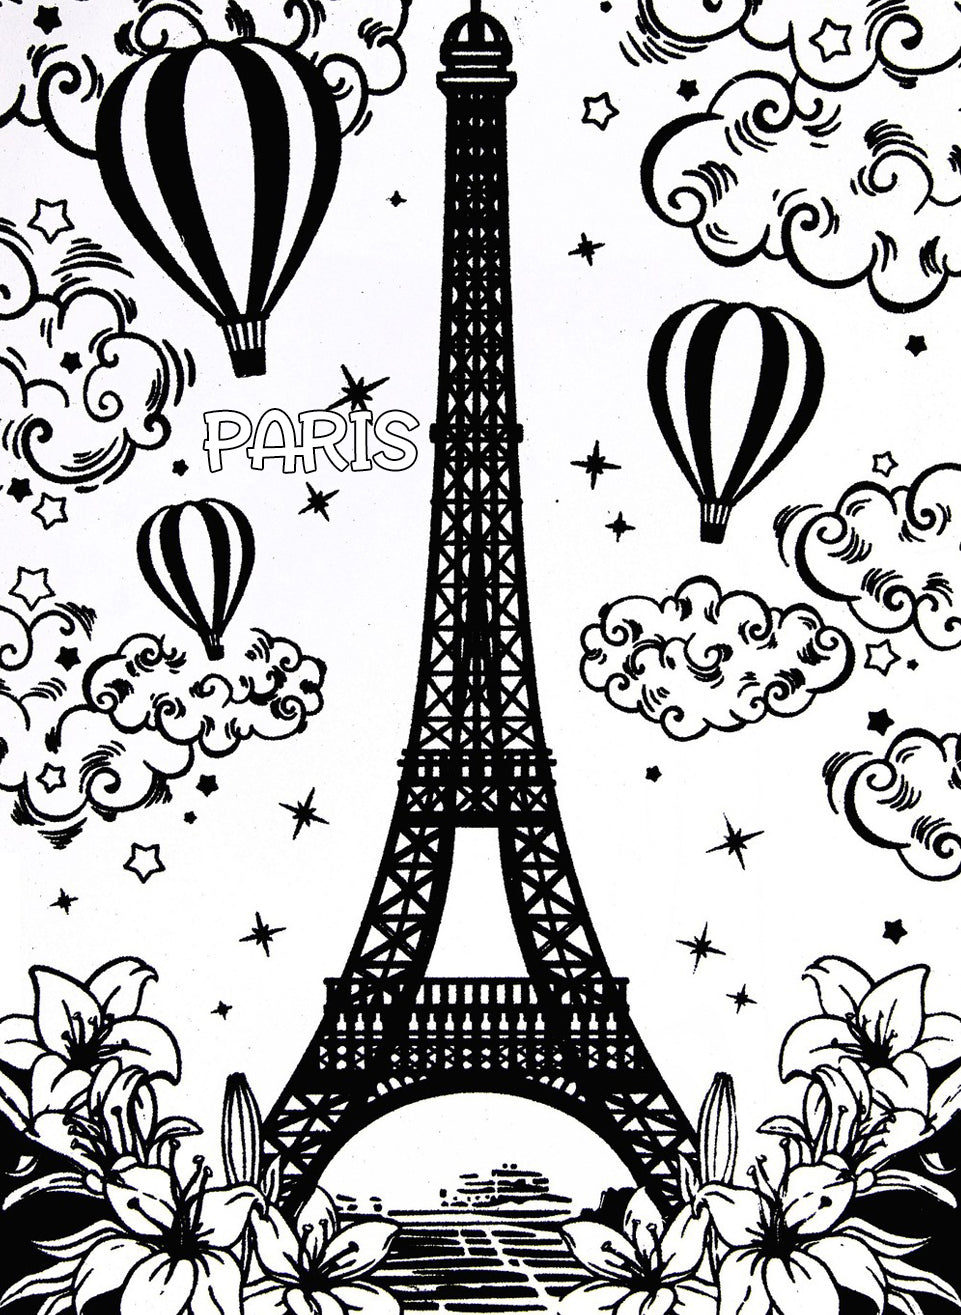 paris eiffel tower coloring pages eliolera - Paris Eiffel Tower Coloring Pages